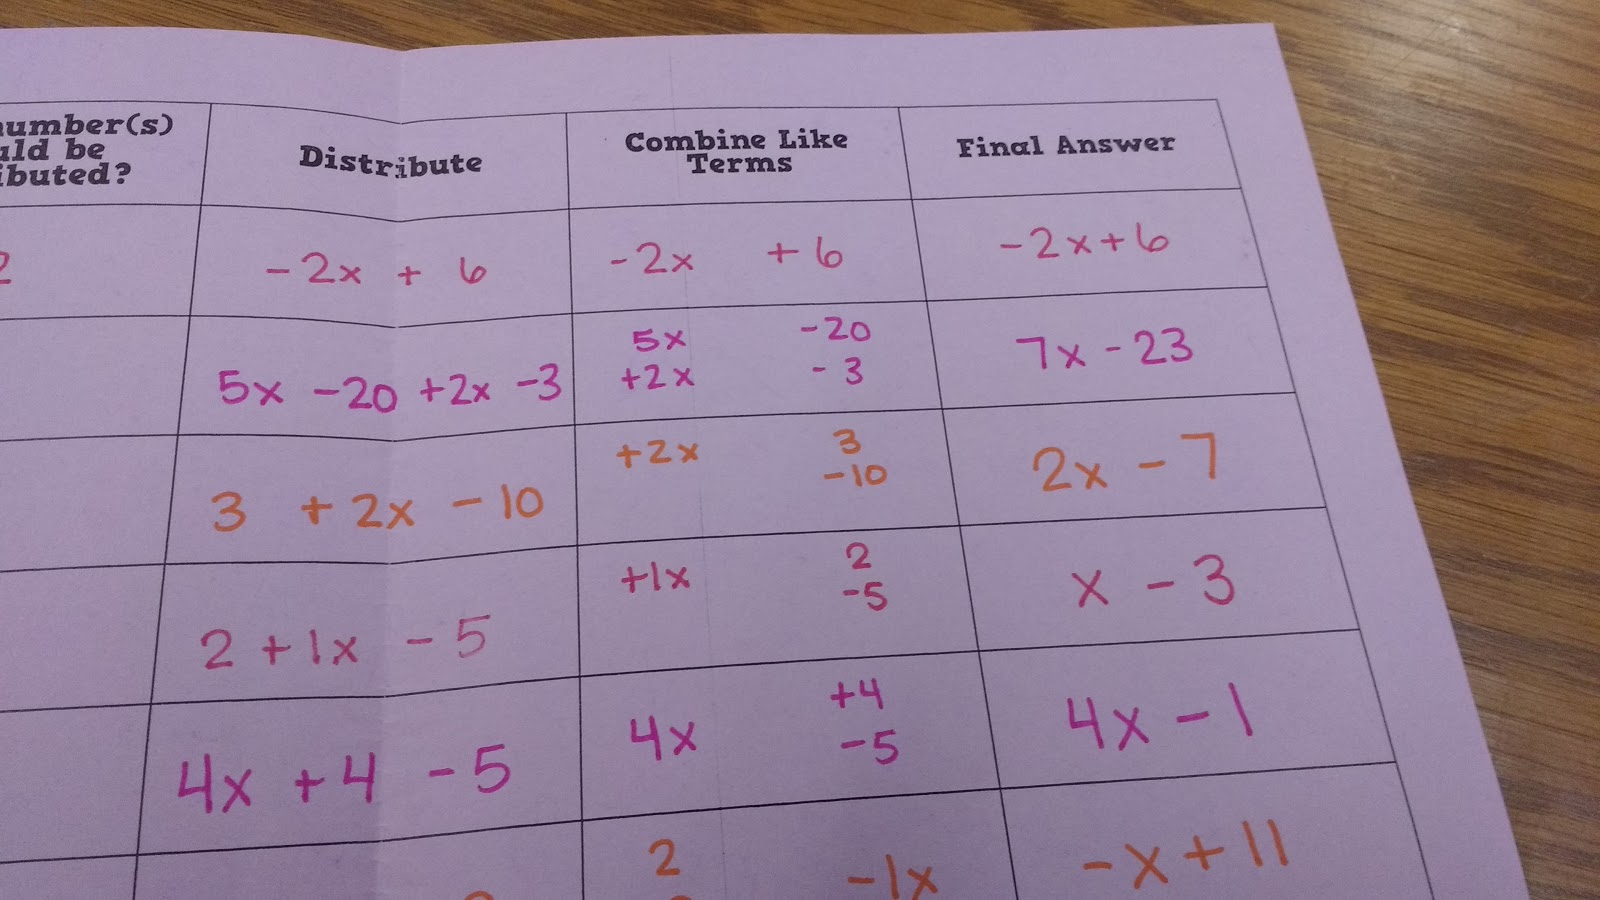 Worksheets Combining Like Terms Worksheet math love combining like terms and the distributive property when we start back on monday i want to give students equations inequalities that have parentheses be combined i